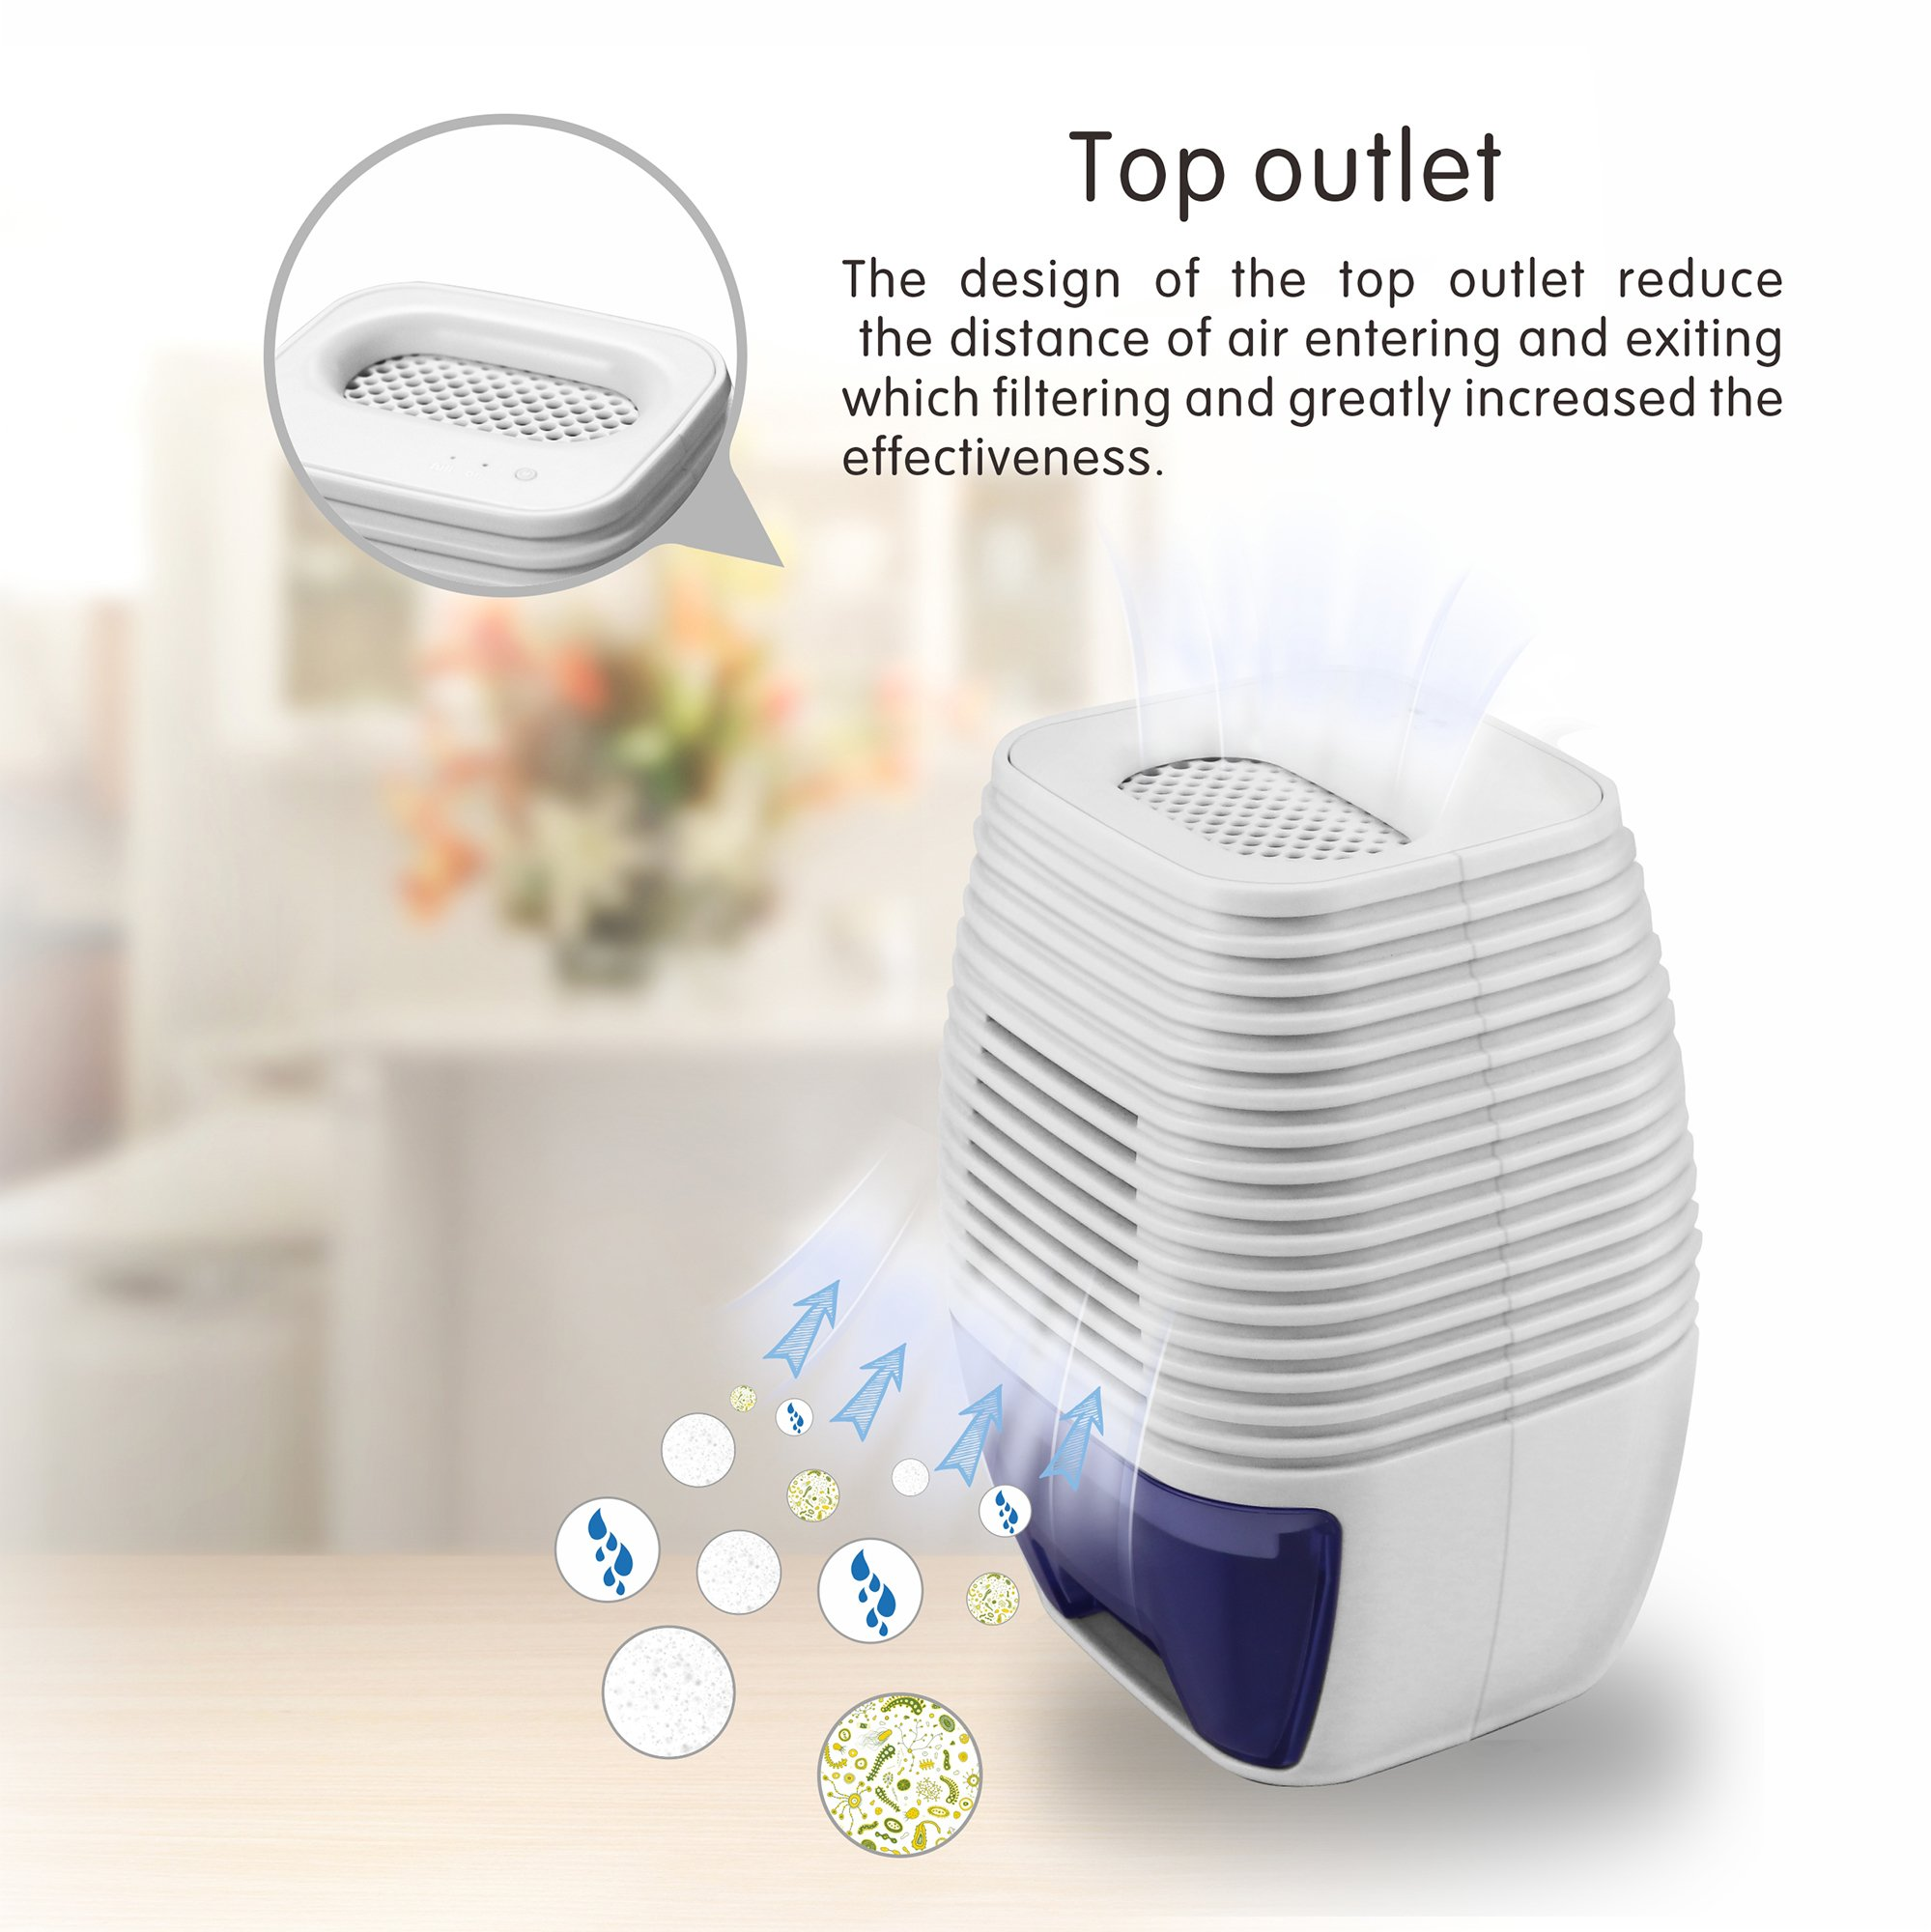 Afloia Mini Dehumidifier USB Plug Quiet Small Dehumidifier 300ml Electric Dehumidifier for Closets or Wardrobe